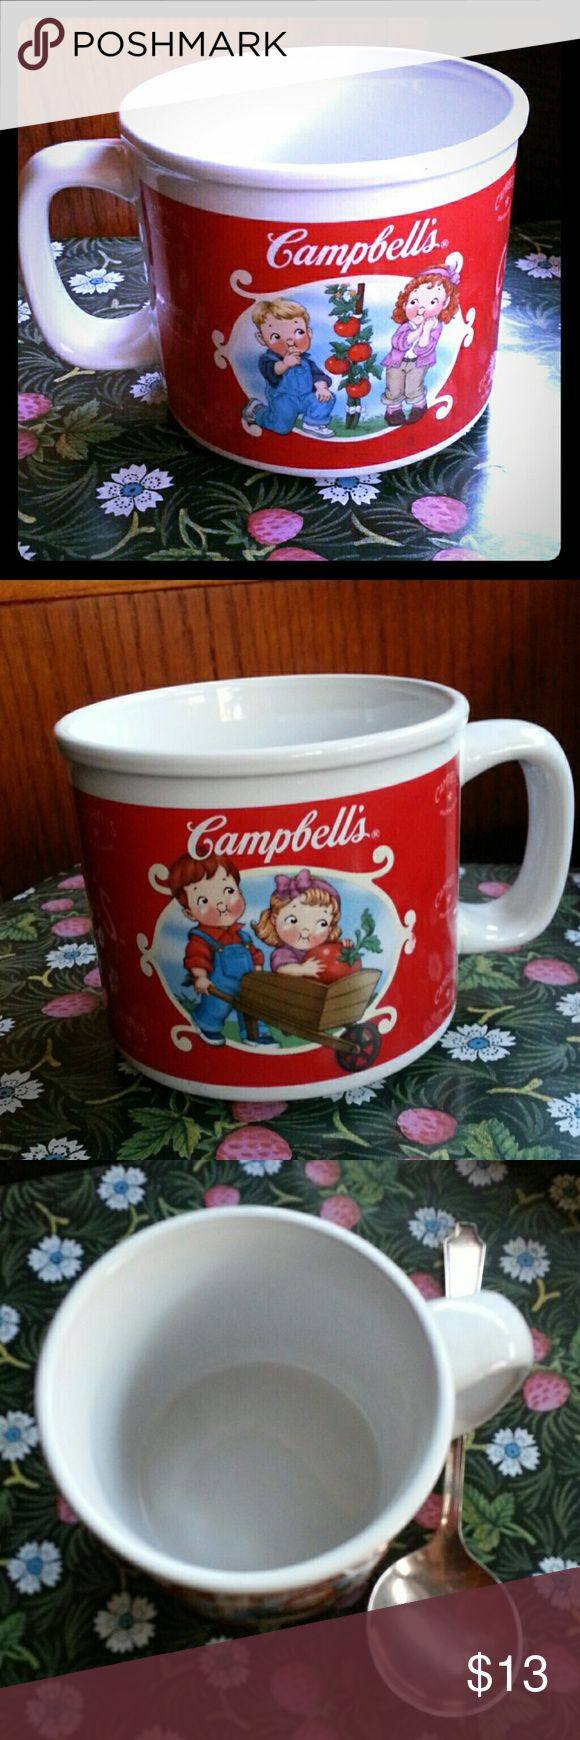 Campbell Soup Mug Hot Chocolate Cup Coffee Lovely in great condition.  Looks new. Super cute !!!  Perfect as a gift for Christmas our any occasion. Campbell Soup Company Other